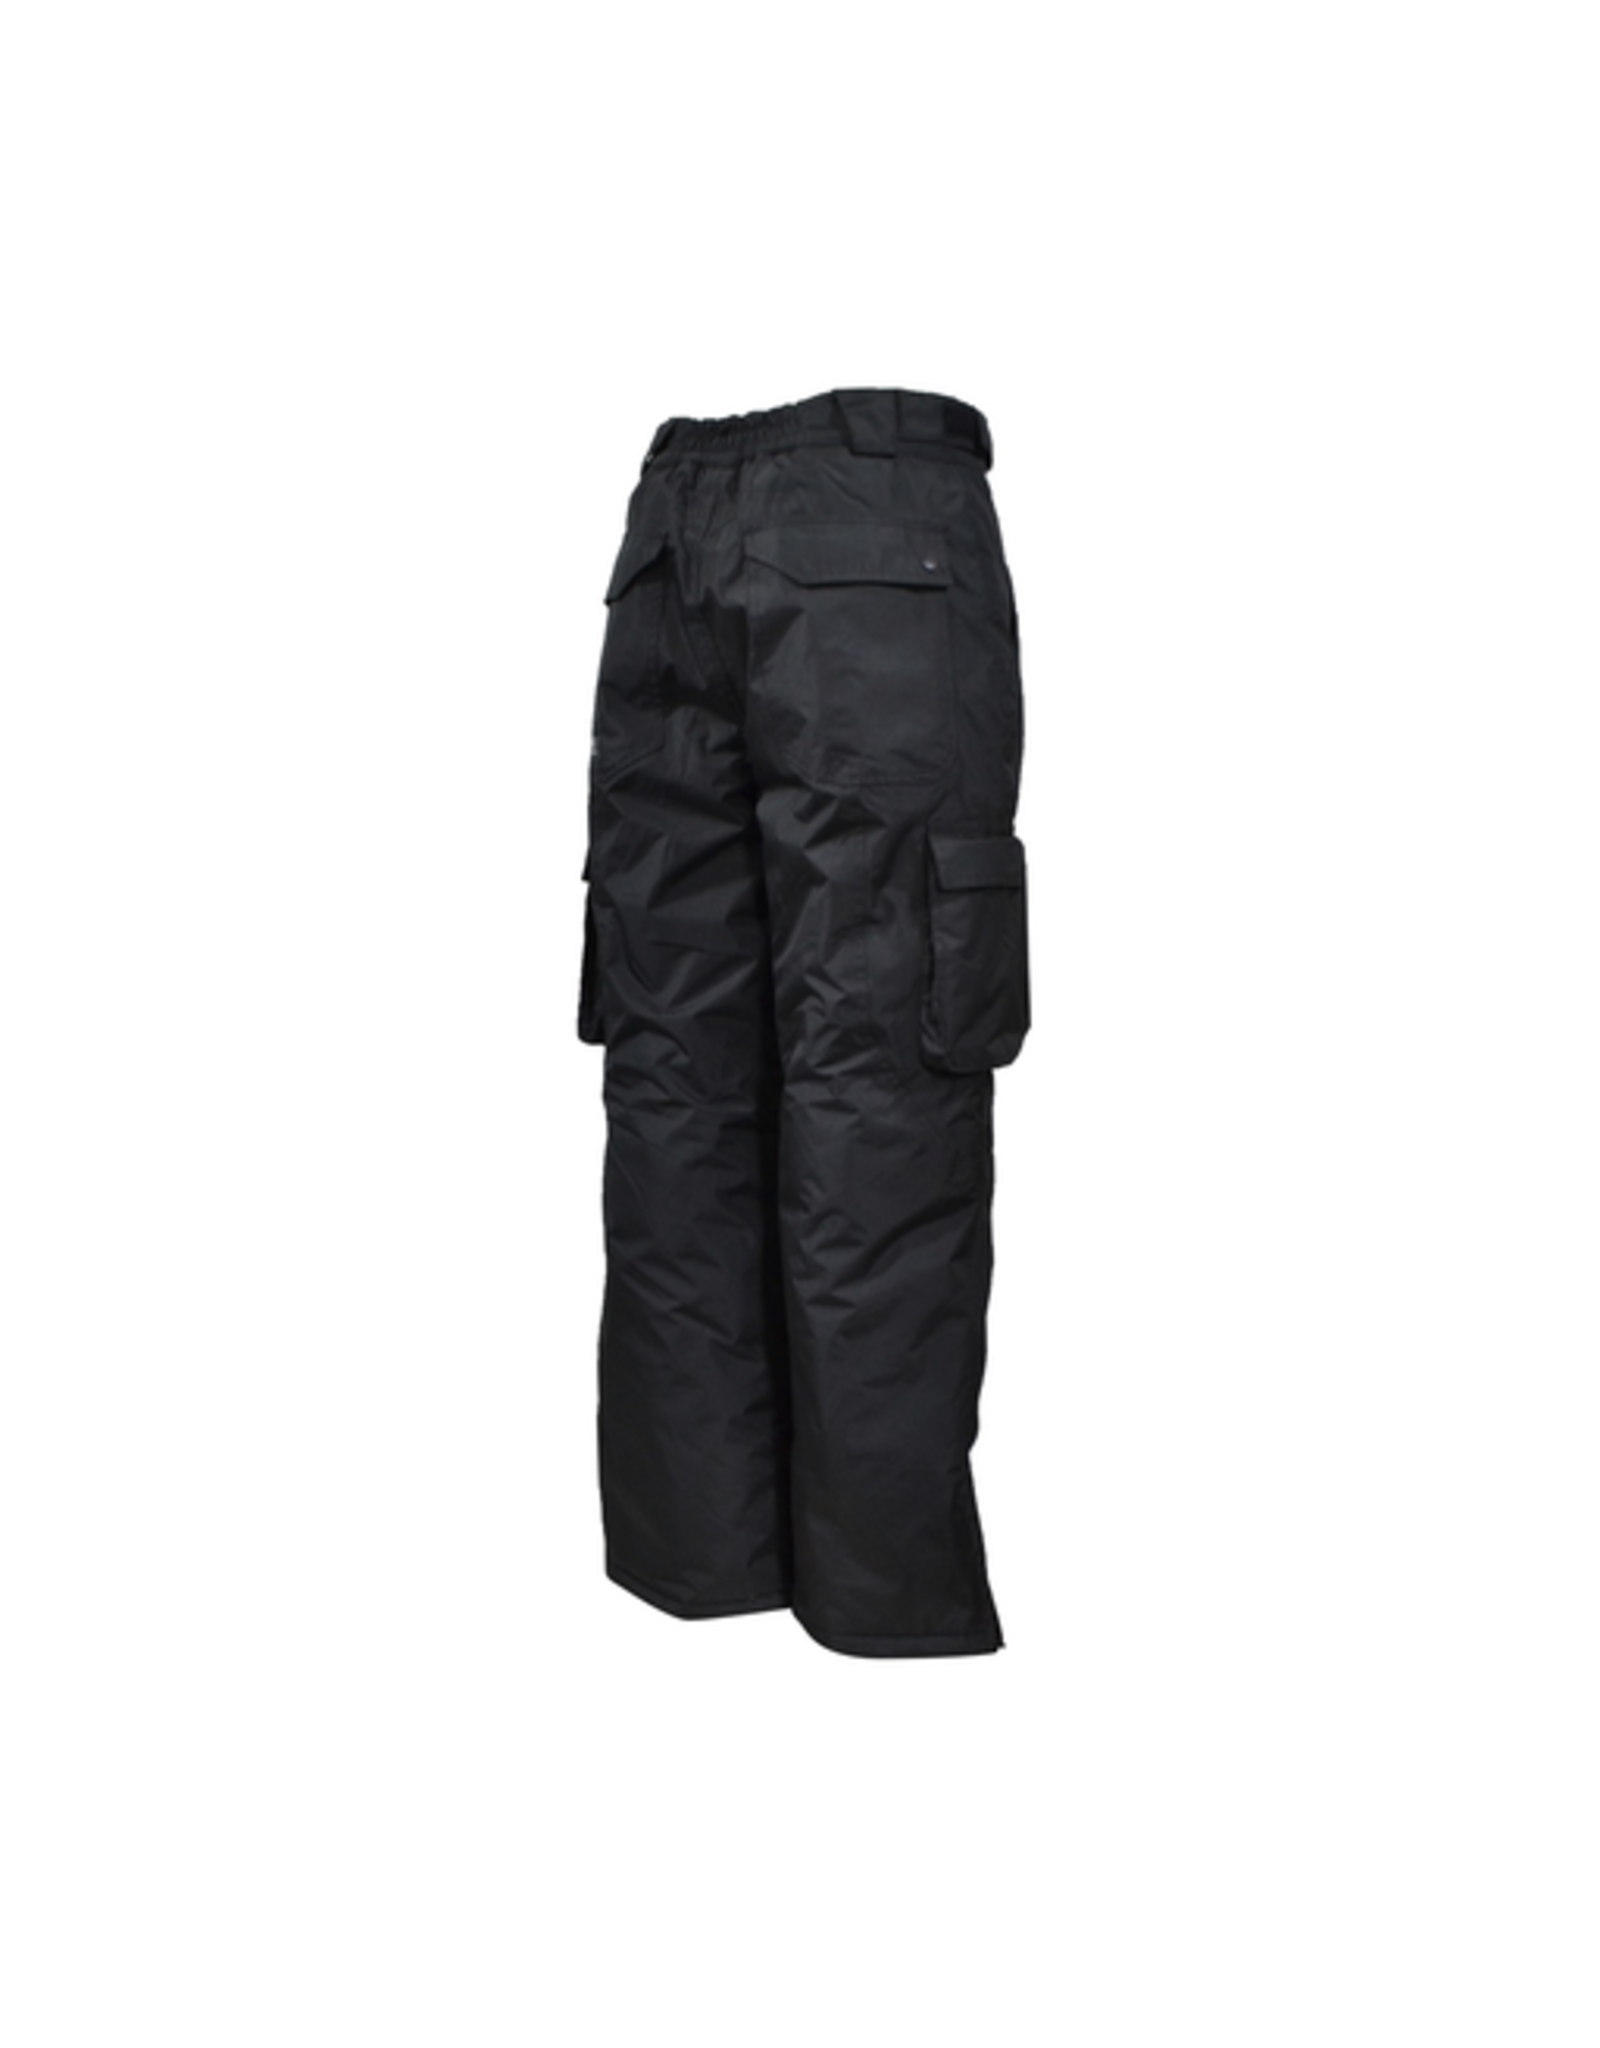 GKS GKS Women's Insulated Waist Pant